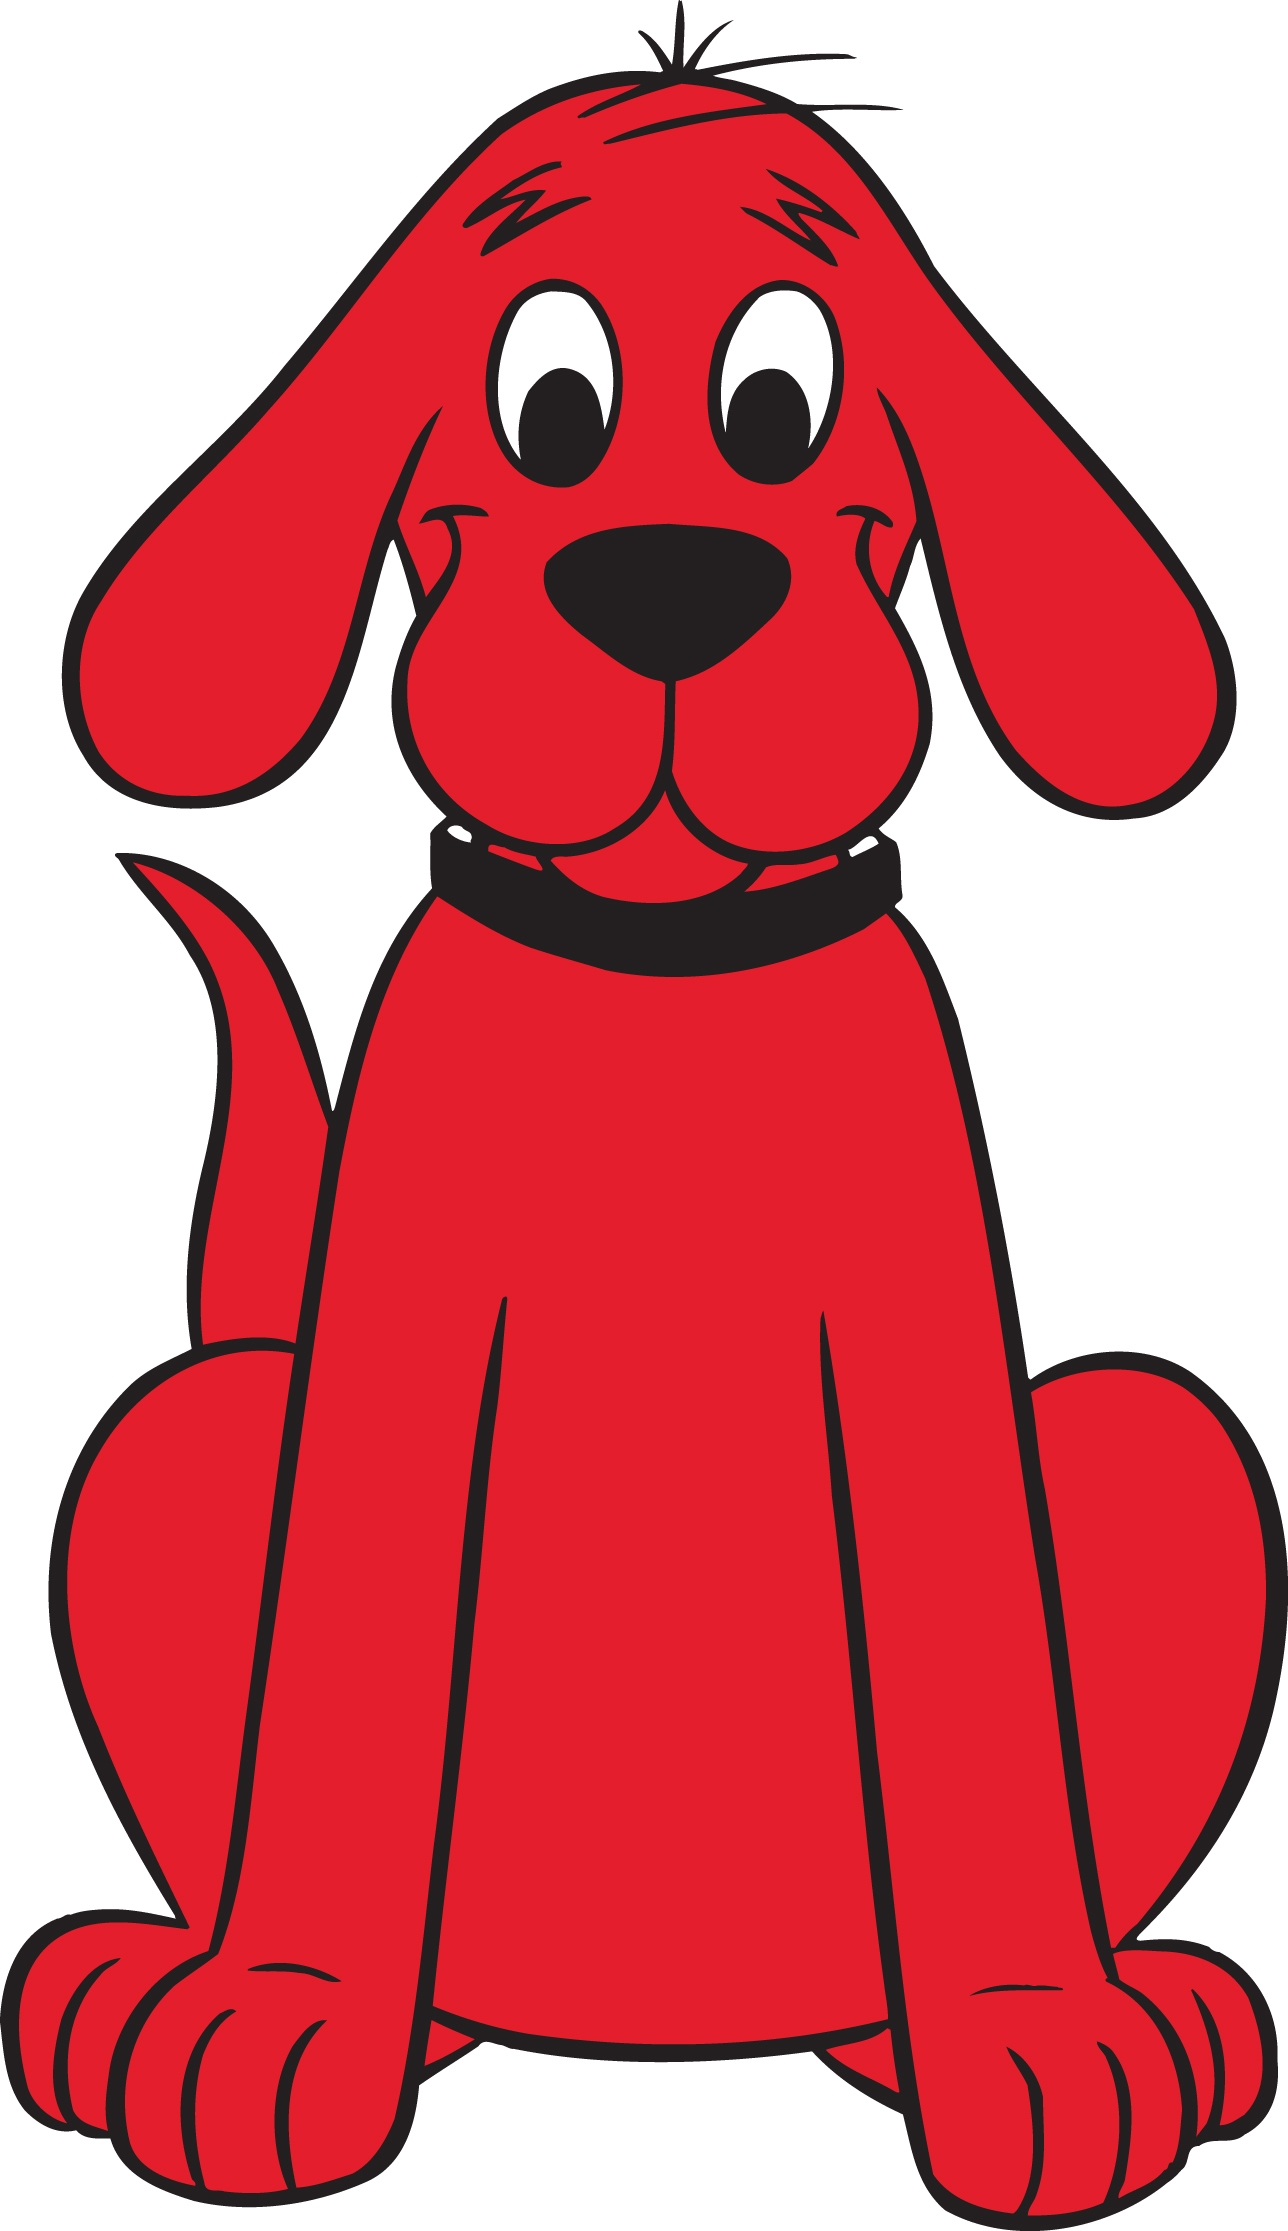 Clifford will